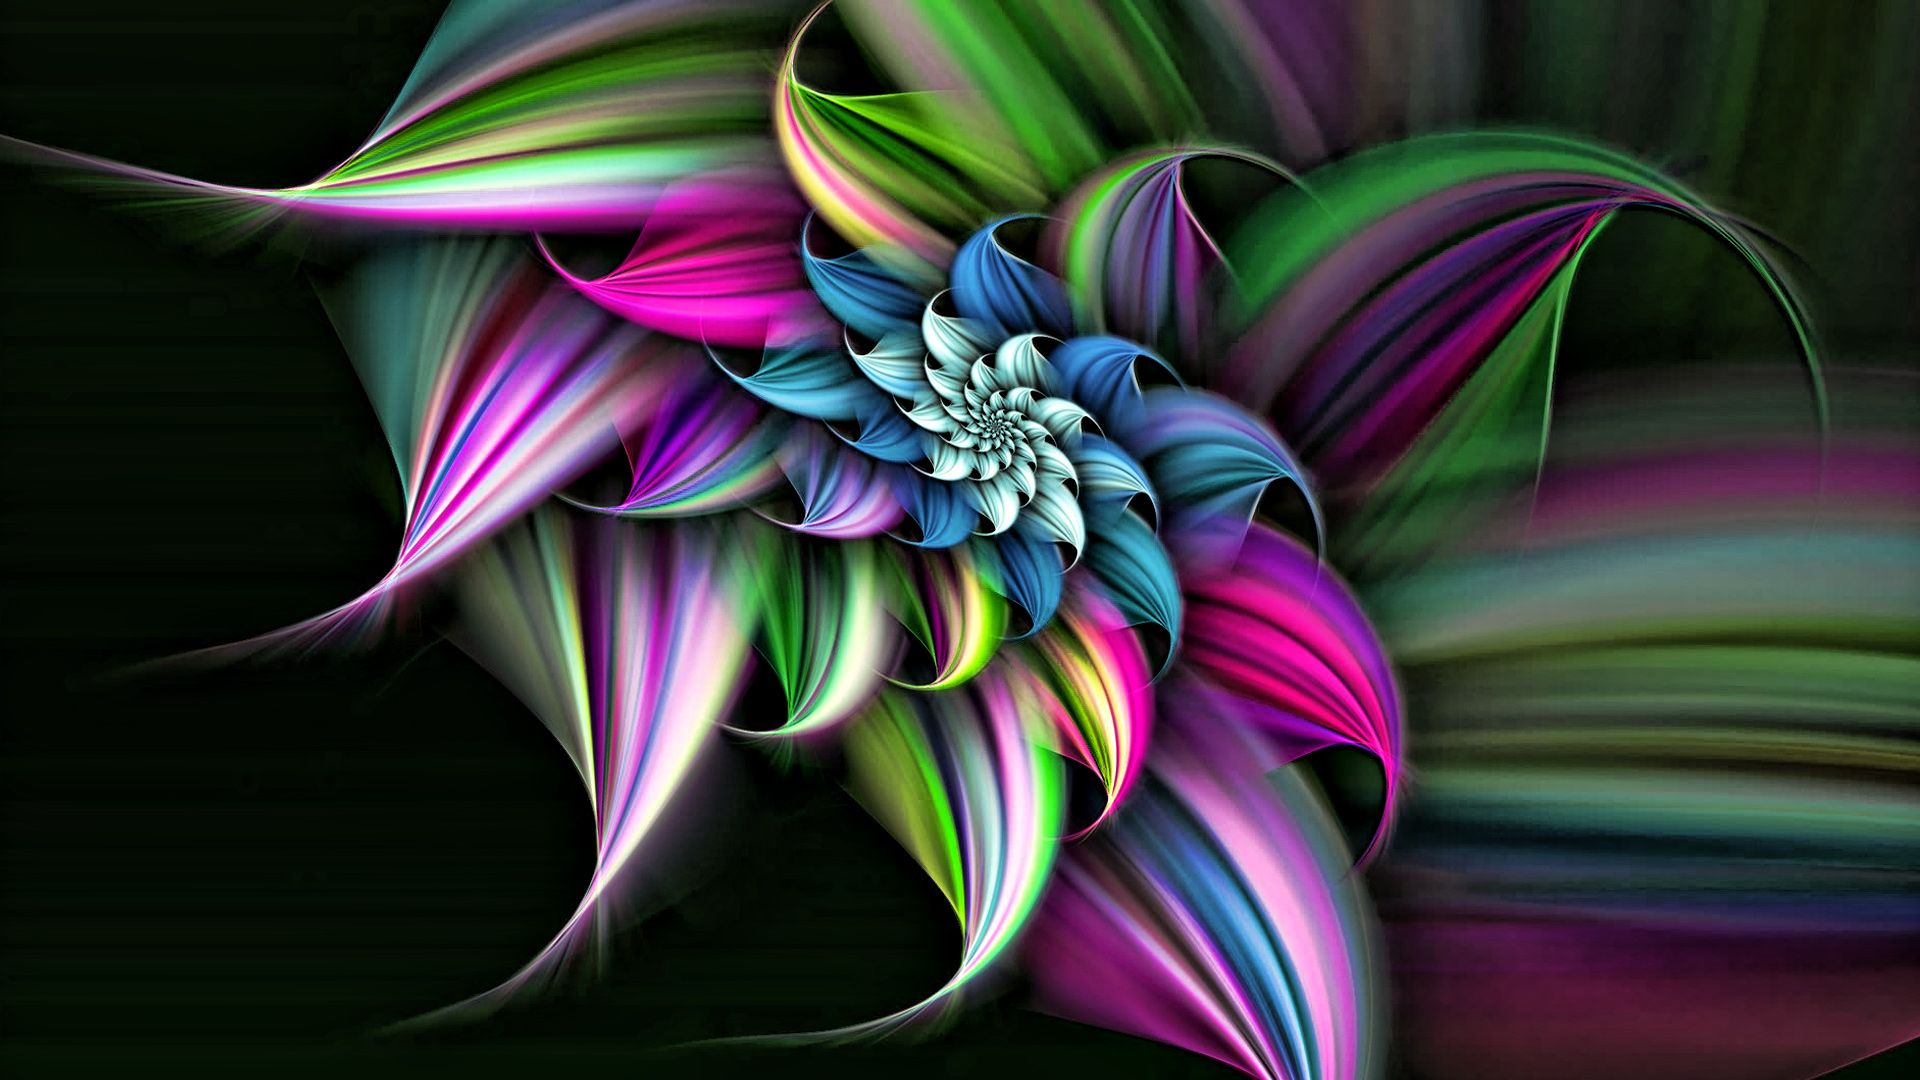 rainbow flowers wallpaper paintings - photo #25